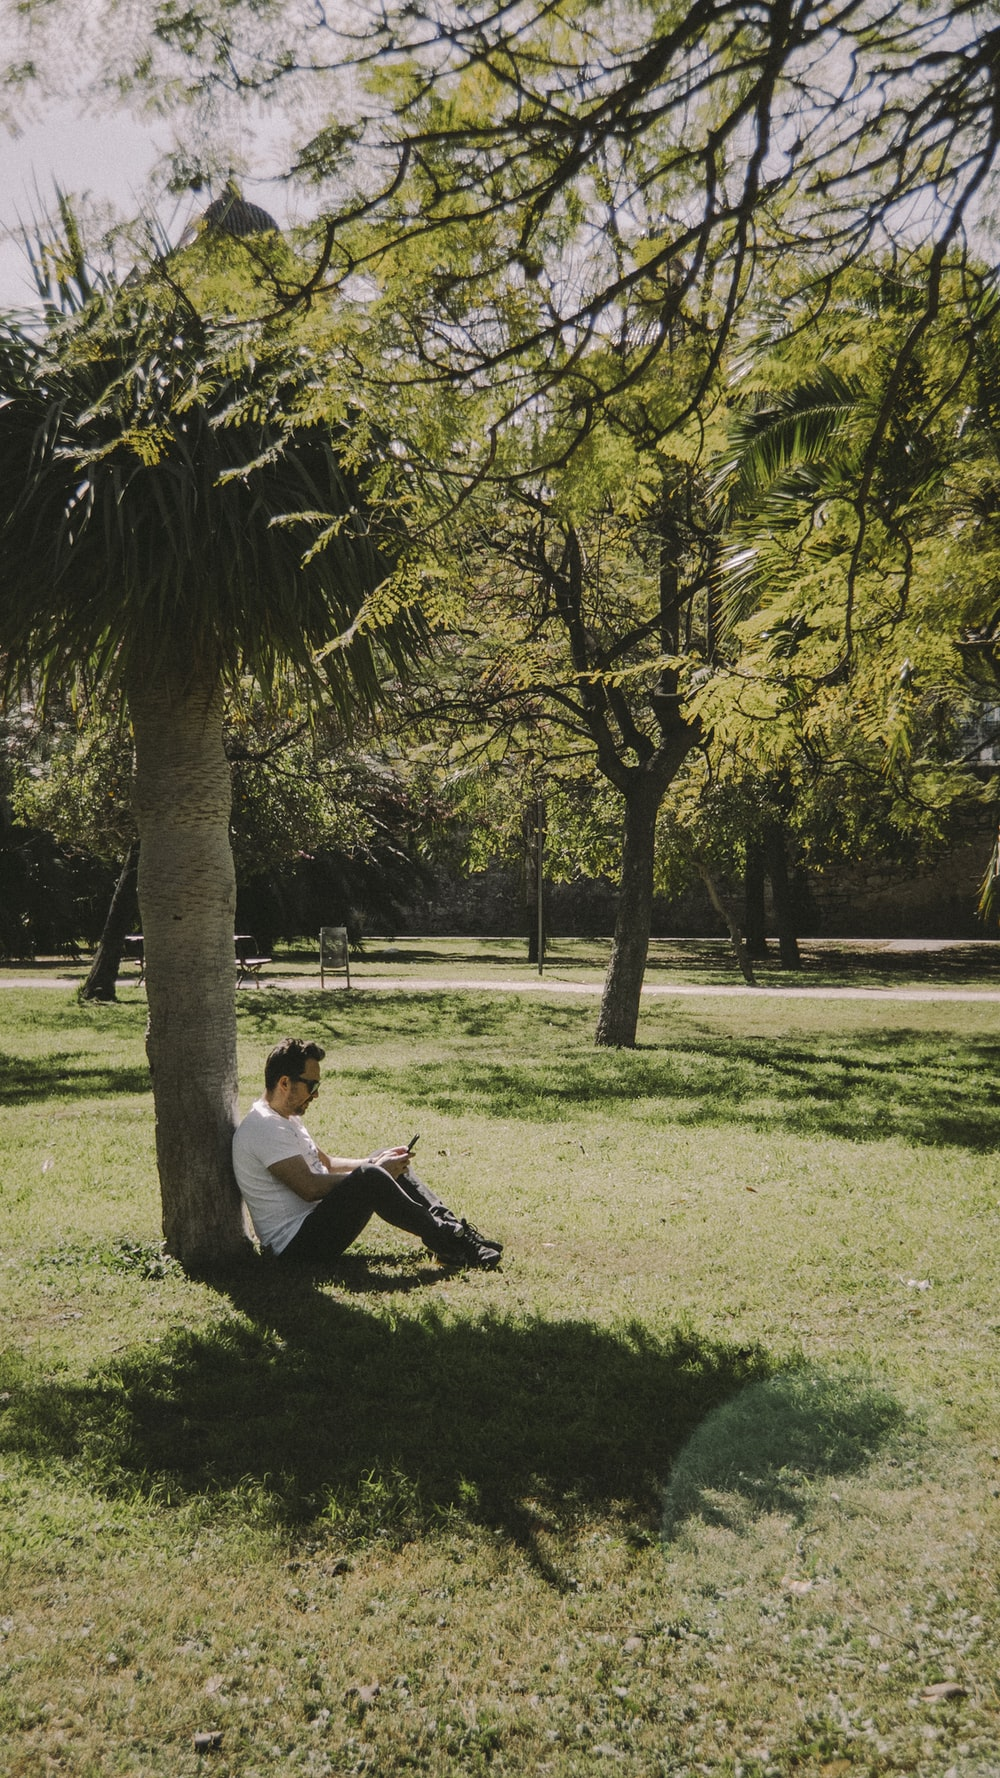 man in white t-shirt sitting on green grass field near green tree during daytime